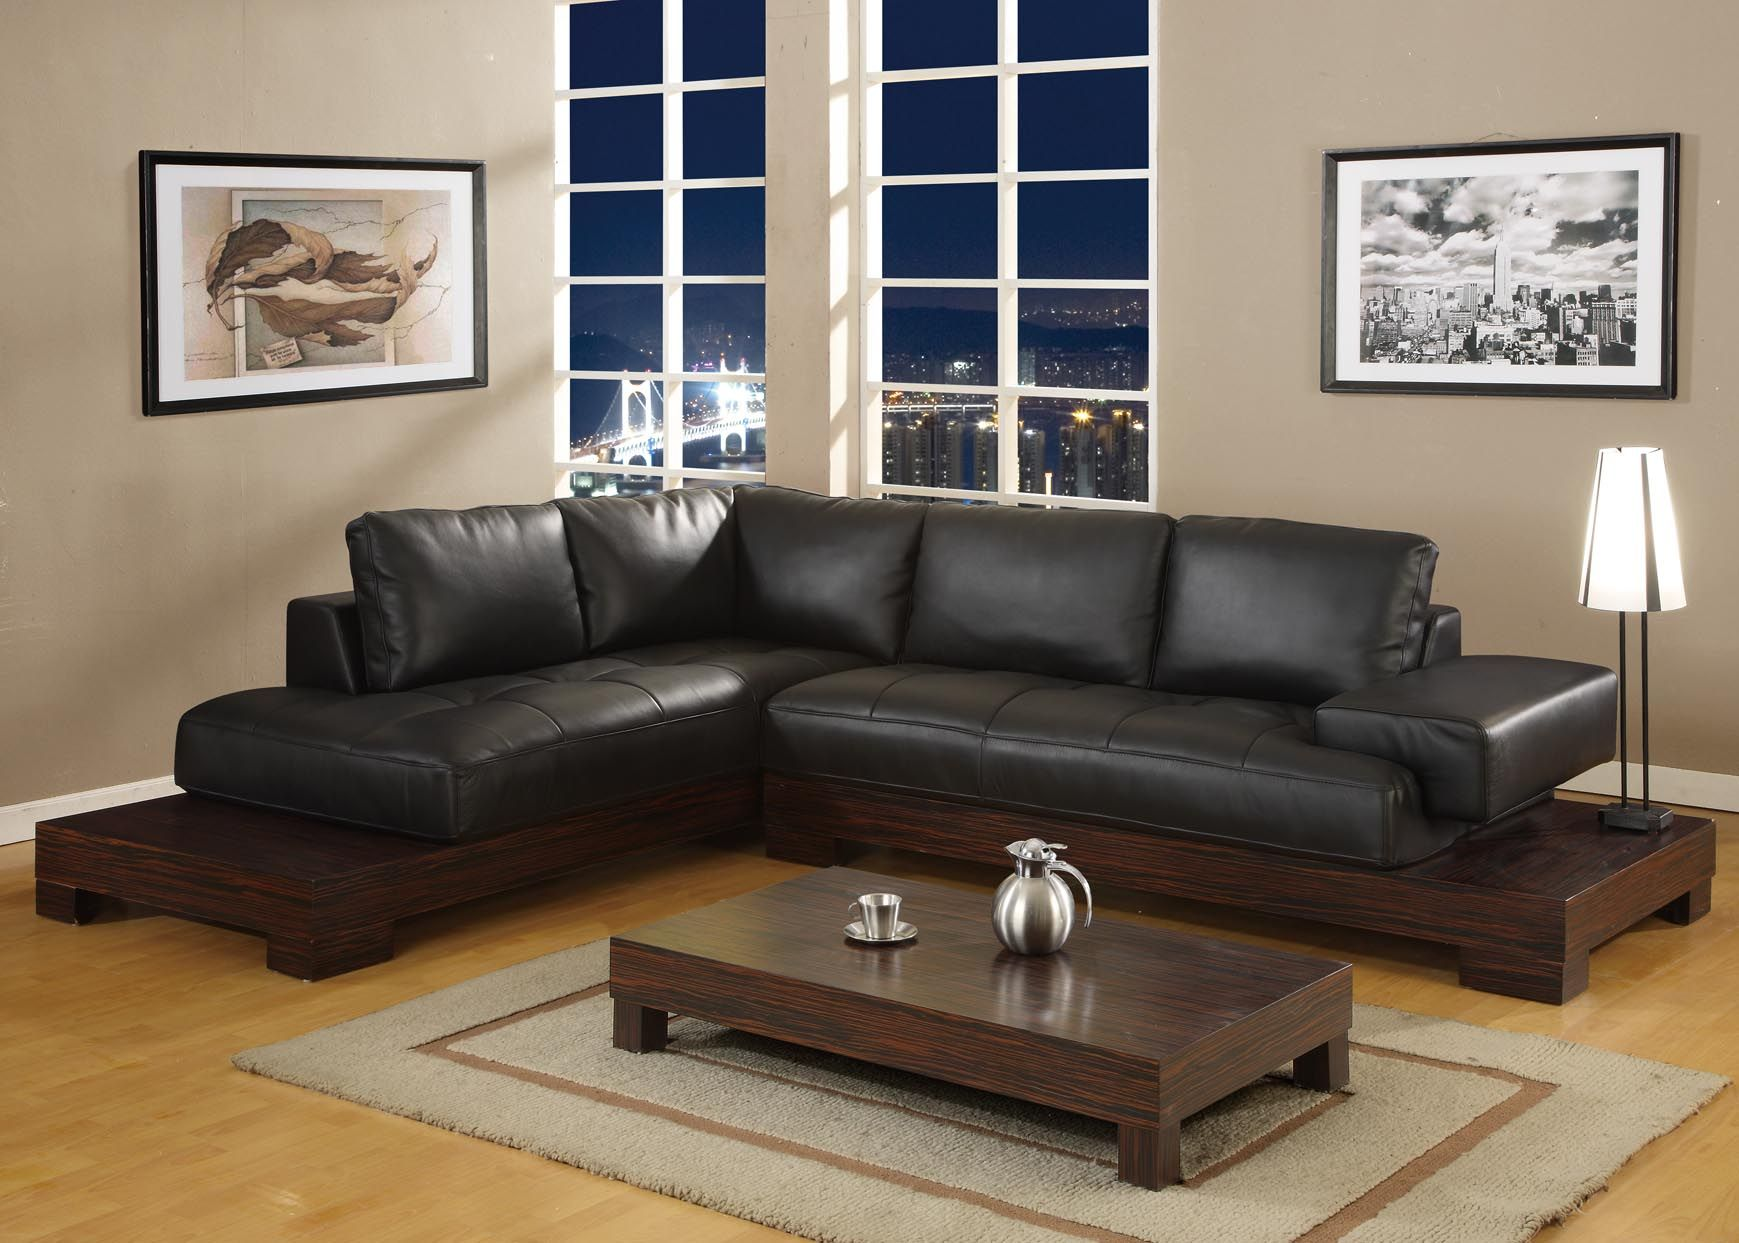 with awesome elegant designs living great furniture premium room for gallery together black photograph leather sofa sectional design couch shape exciting l